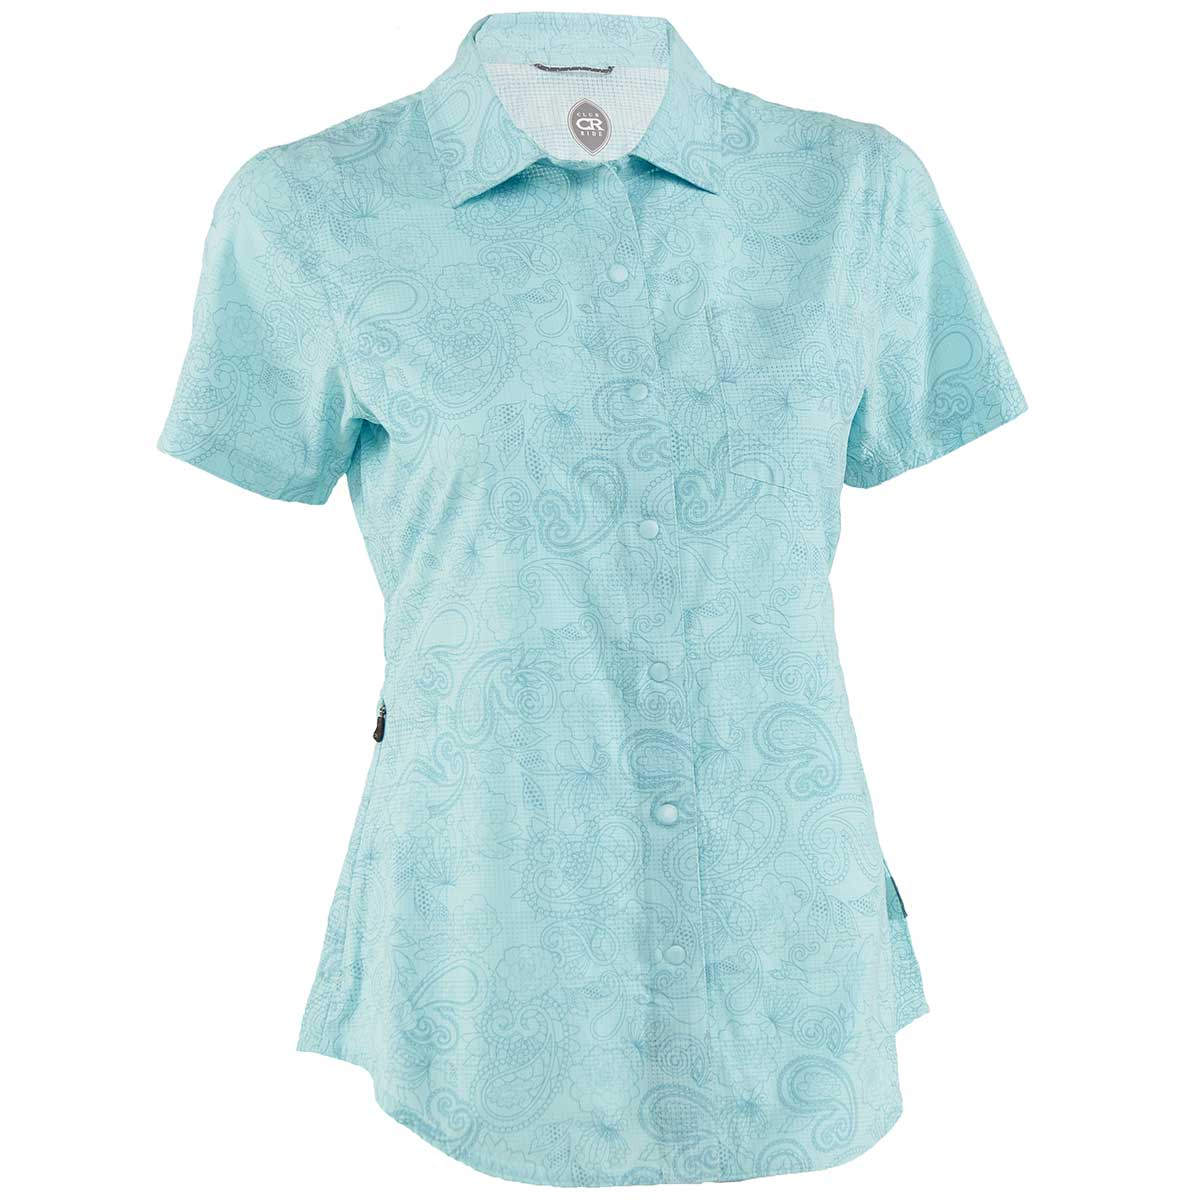 Club Ride women's Camas Cactus Print Jersey in Angel Blue